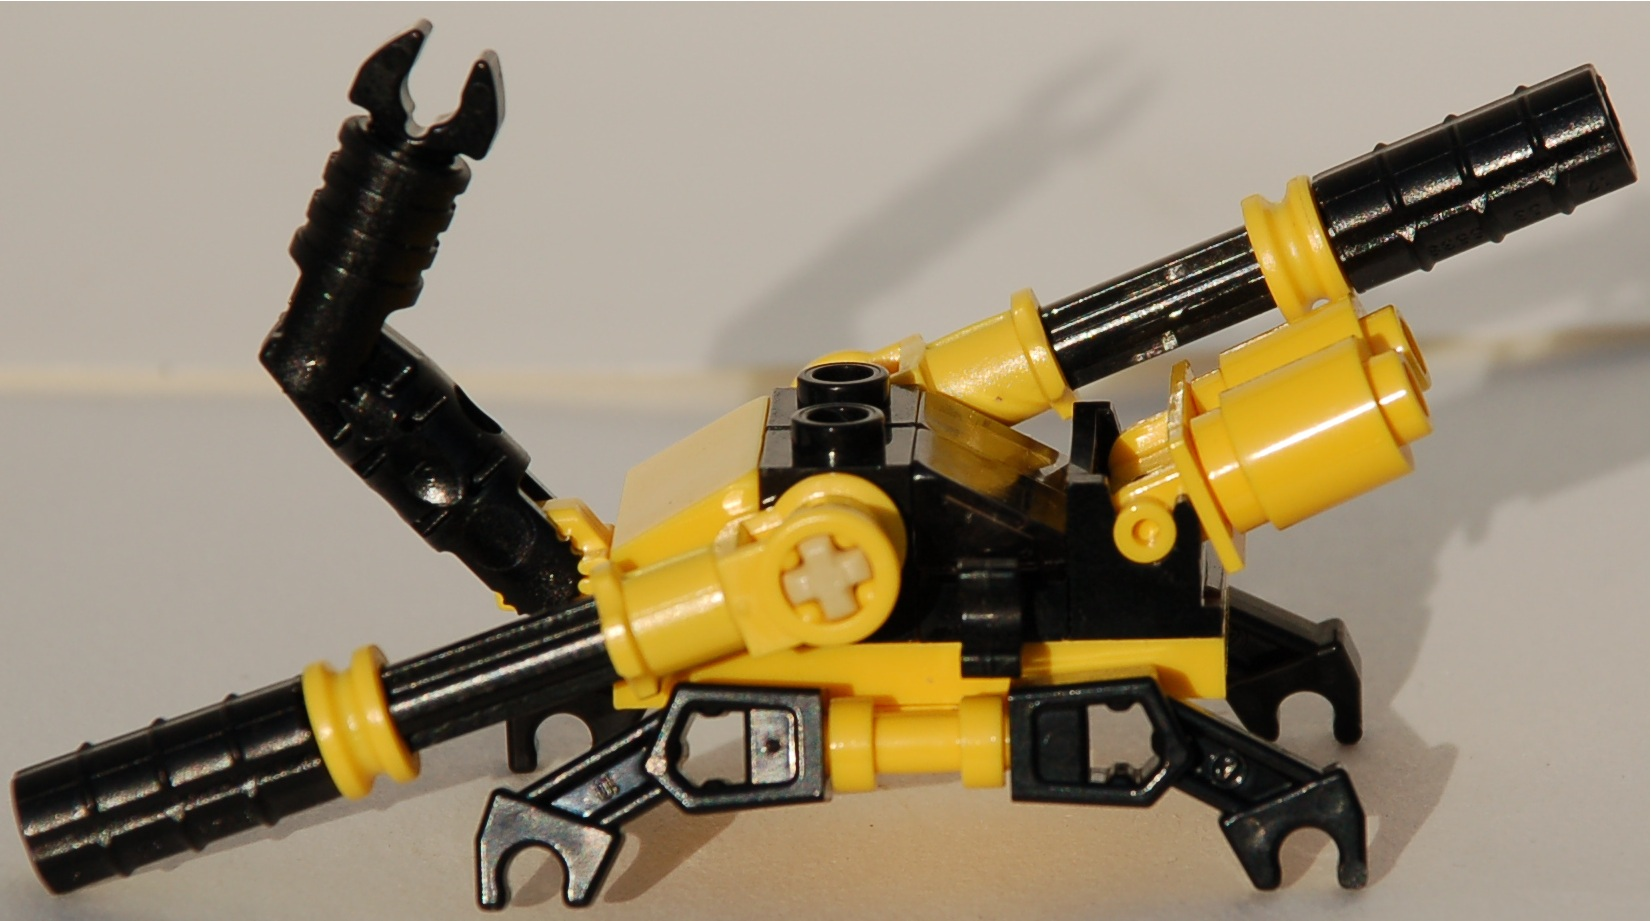 scorpion_crawler__floppy_gun.jpg